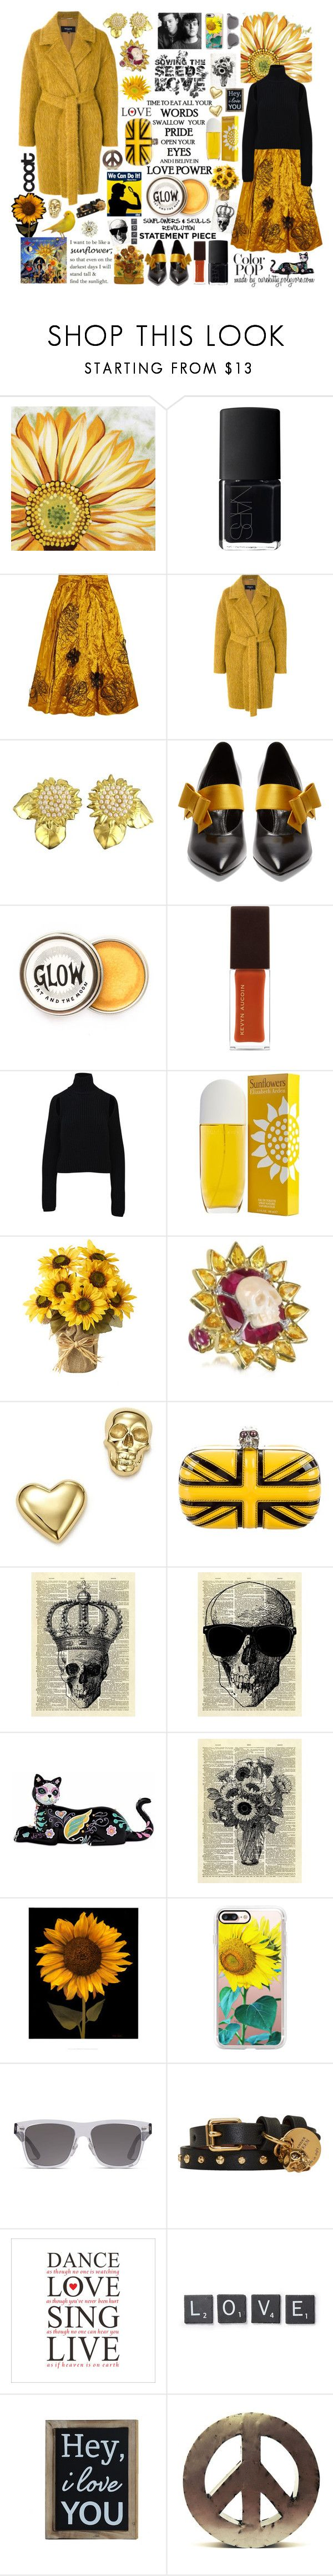 """Sowing the Seeds of Love: A Sunflowers & Skulls Revolution!"" by curekitty ❤ liked on Polyvore featuring Thos. Baker, NARS Cosmetics, Roksanda, Rochas, Karl Lagerfeld, Prada, Kevyn Aucoin, Calvin Klein, Elizabeth Arden and Bernard Delettrez"